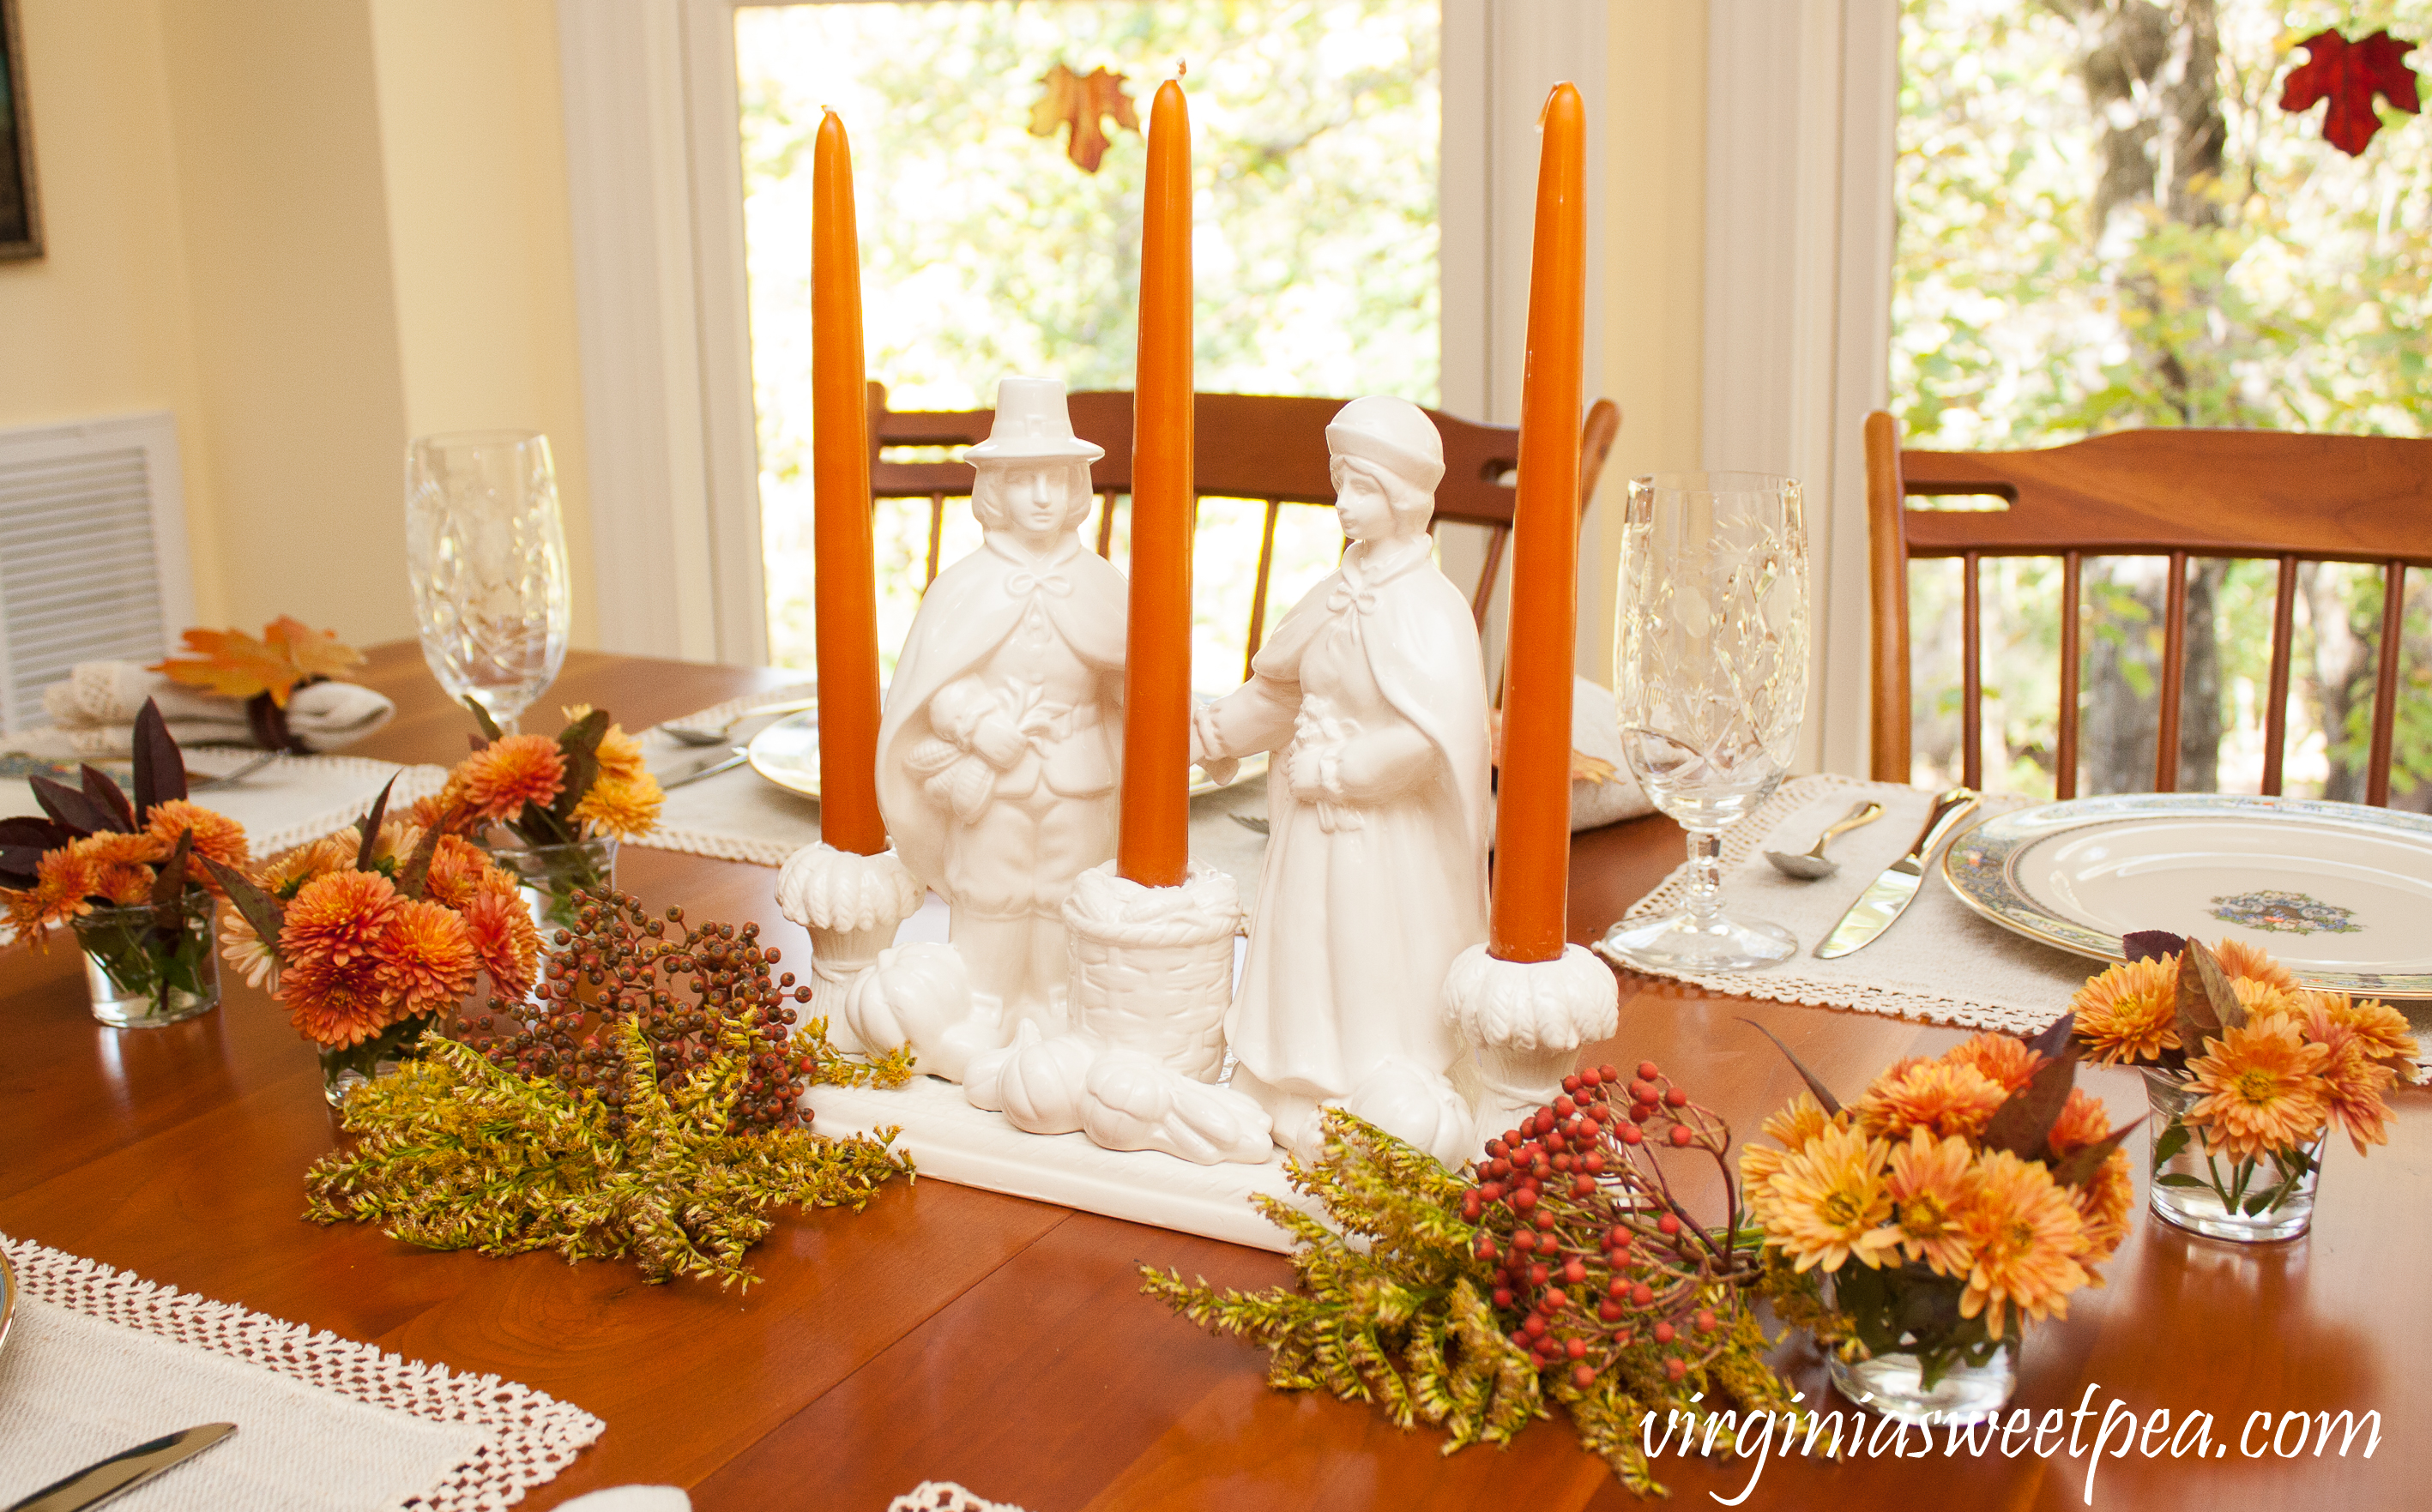 We Gather Together Thanksgiving Table - Get ideas for setting your table for Thanksgiving from 20+ bloggers. #thanksgivingcenterpiece #thanksgiving #vintagepilgrims